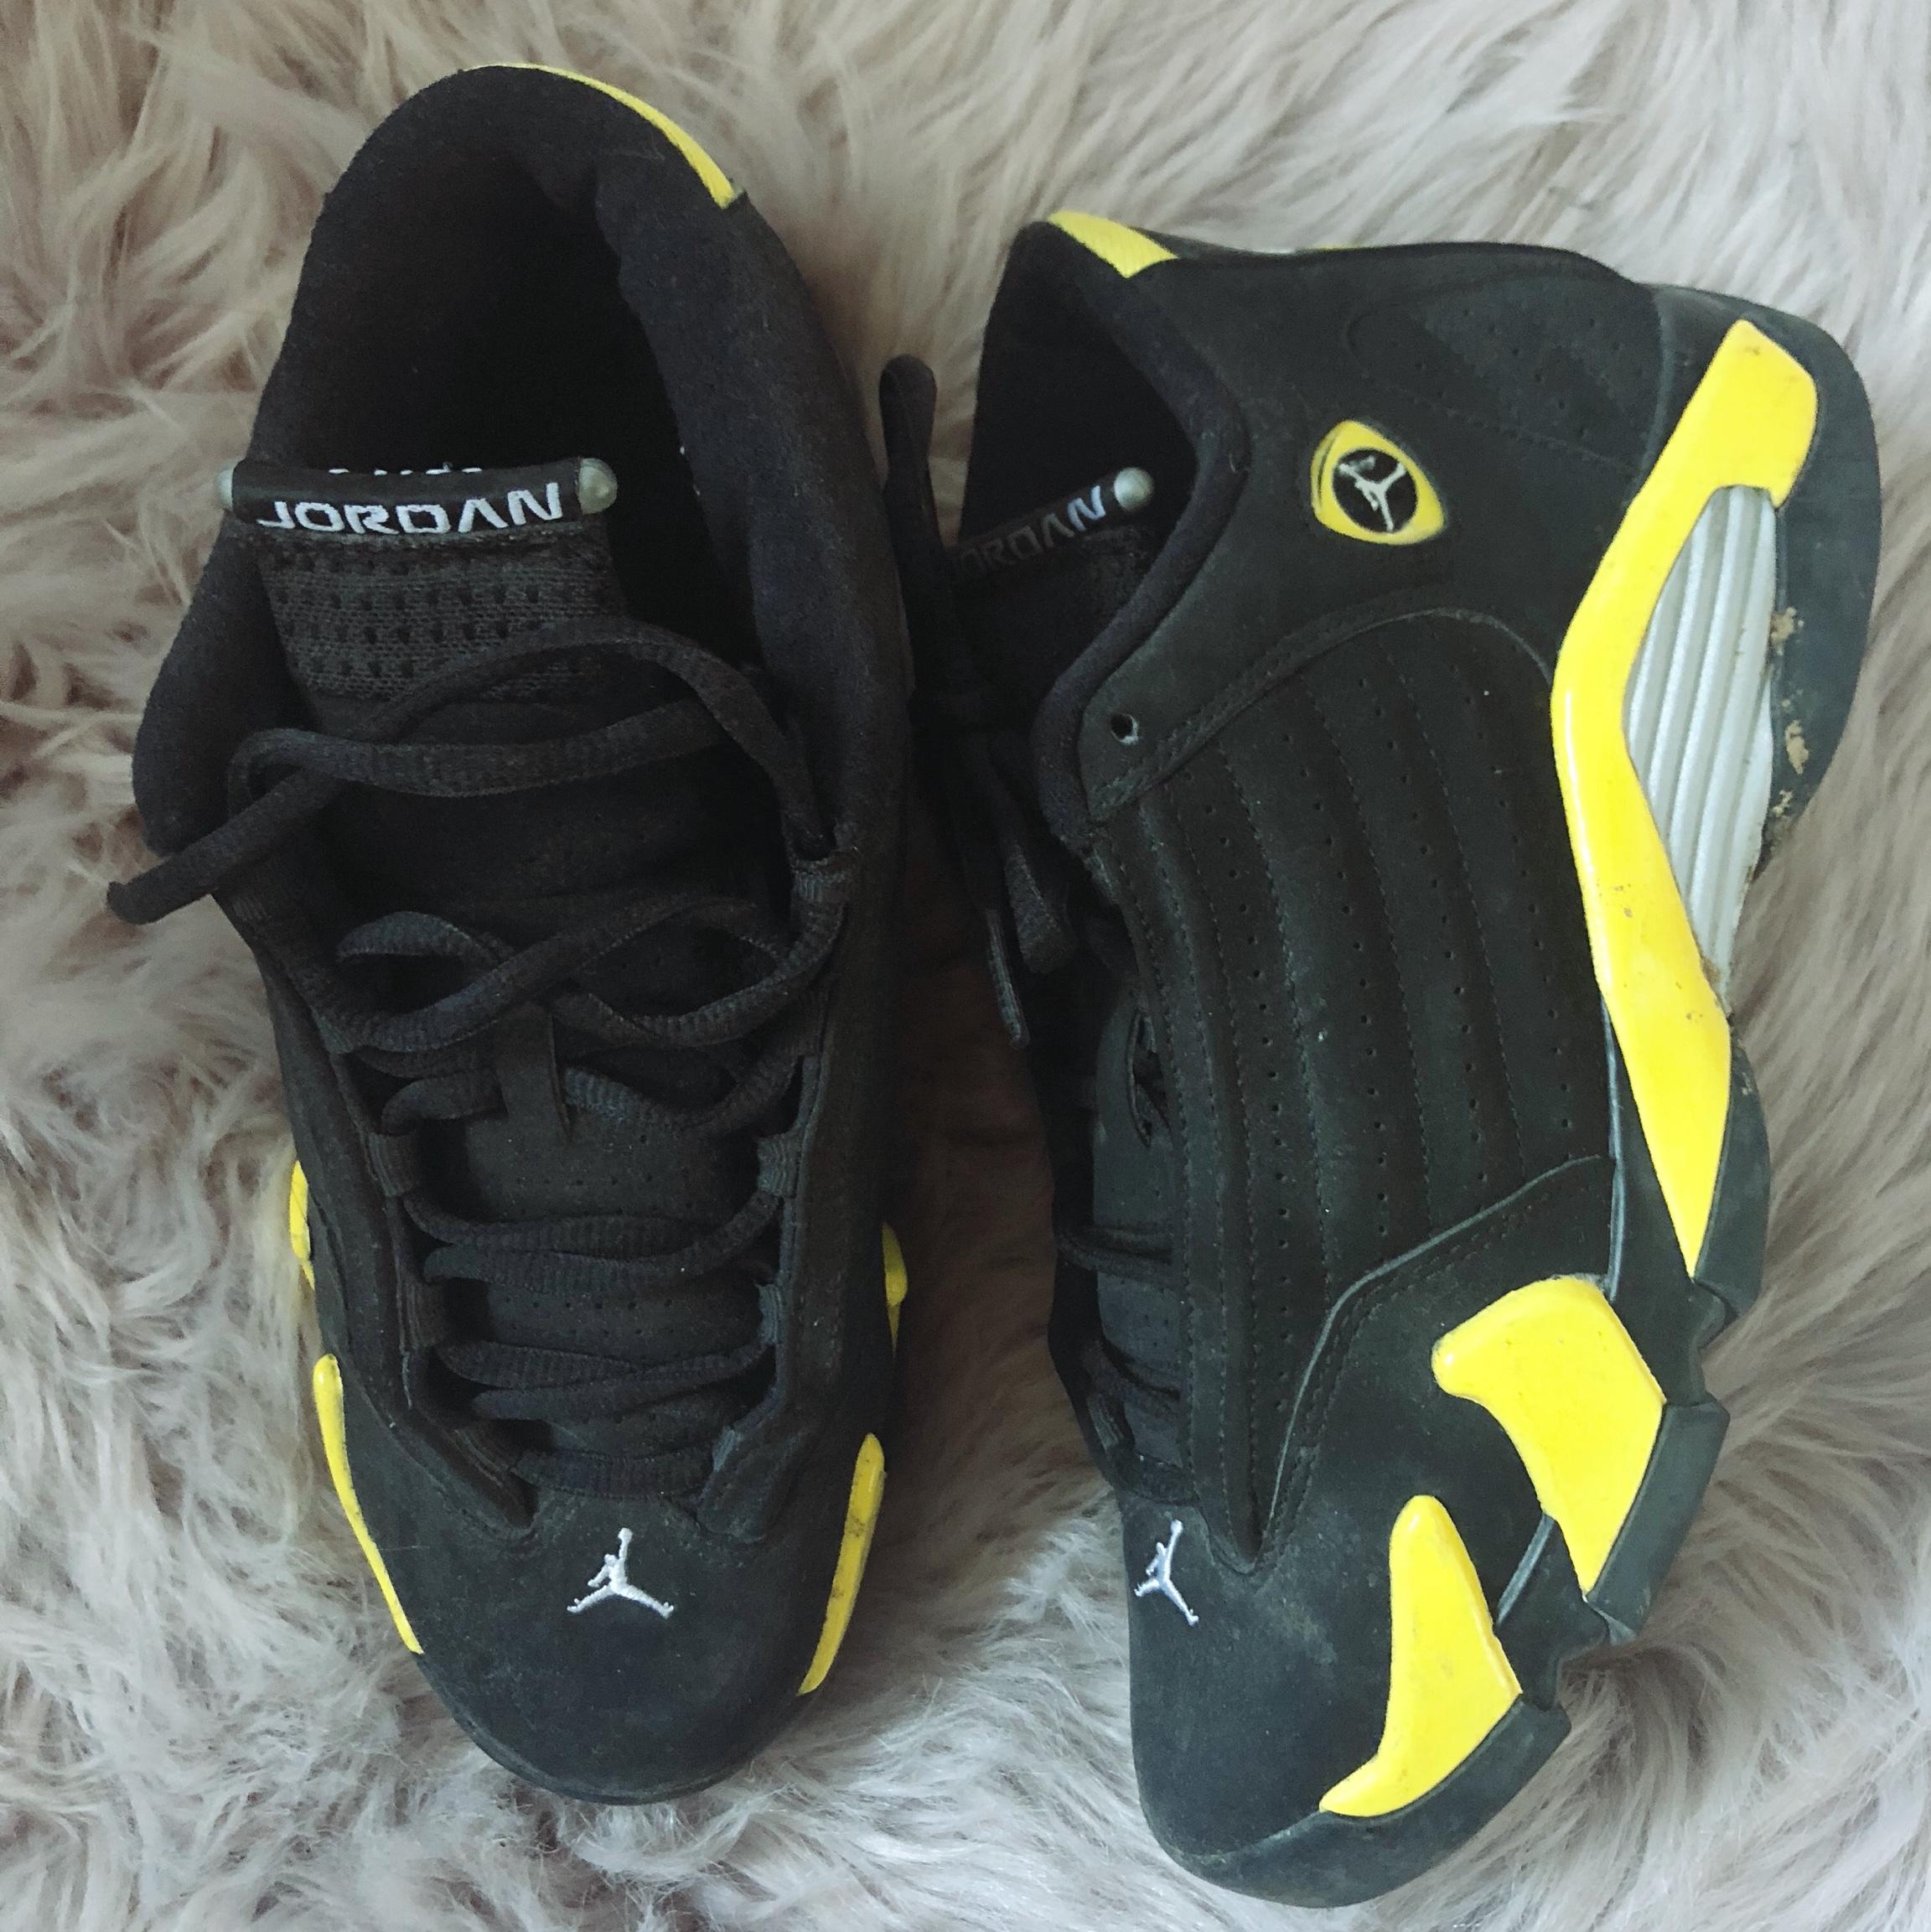 buy online 30844 bb2a2 Jordan retro 14 Thunder - Depop